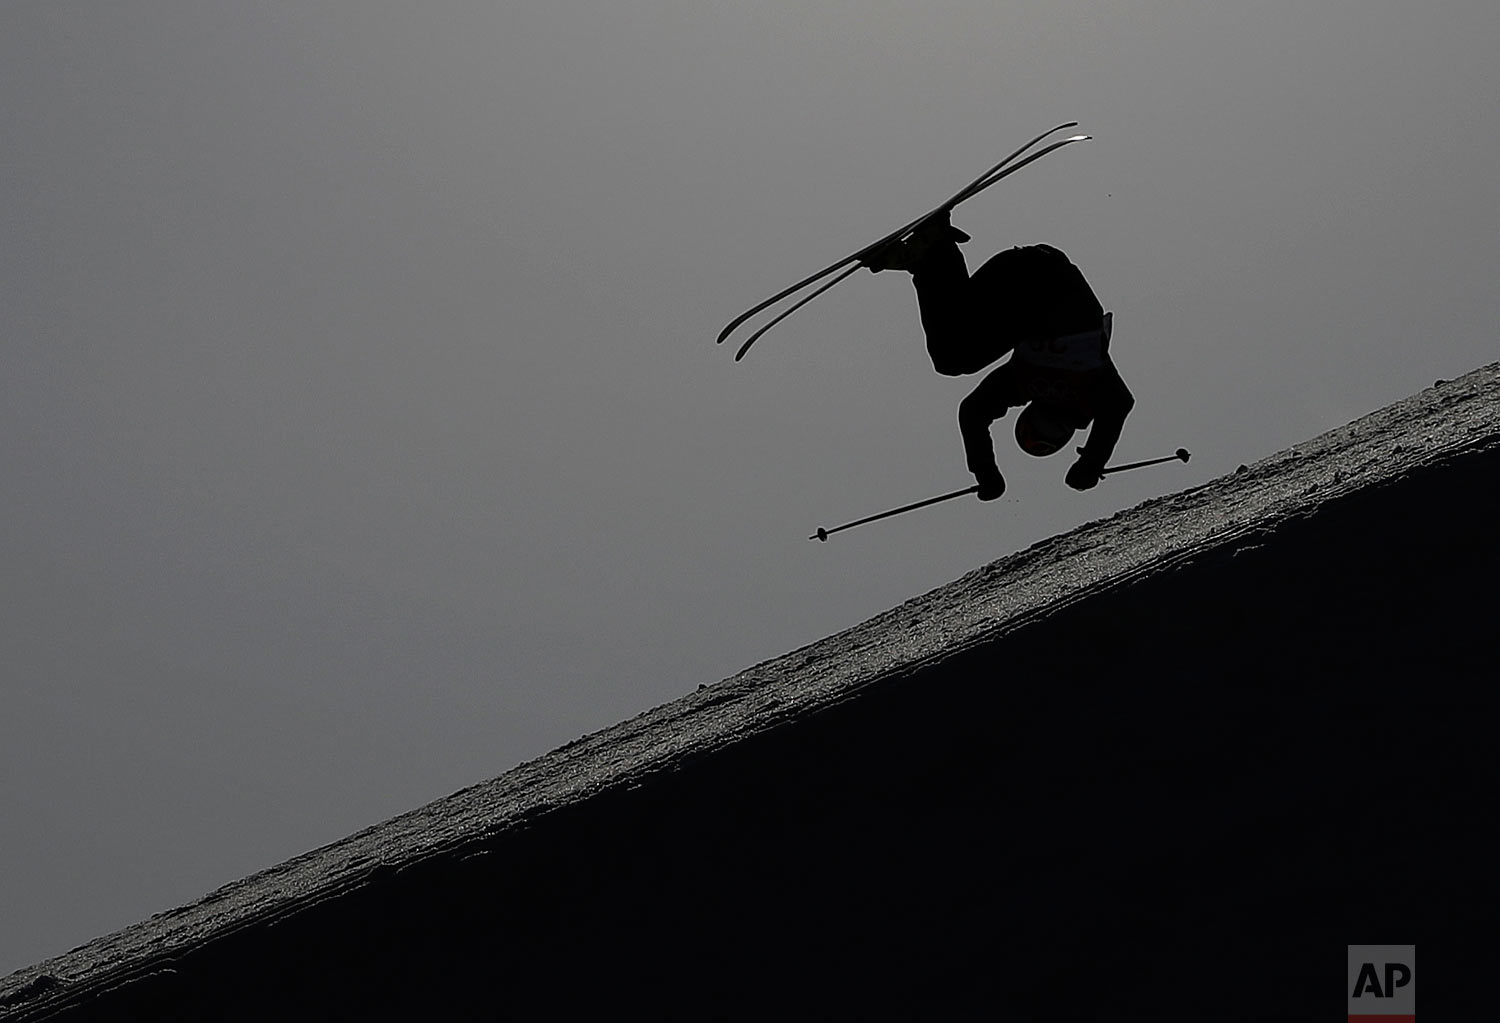 Christian Nummedal, of Norway, jumps during the men's slopestyle qualifying at Phoenix Snow Park at the 2018 Winter Olympics in Pyeongchang, South Korea, Sunday, Feb. 18, 2018. (AP Photo/Kin Cheung)